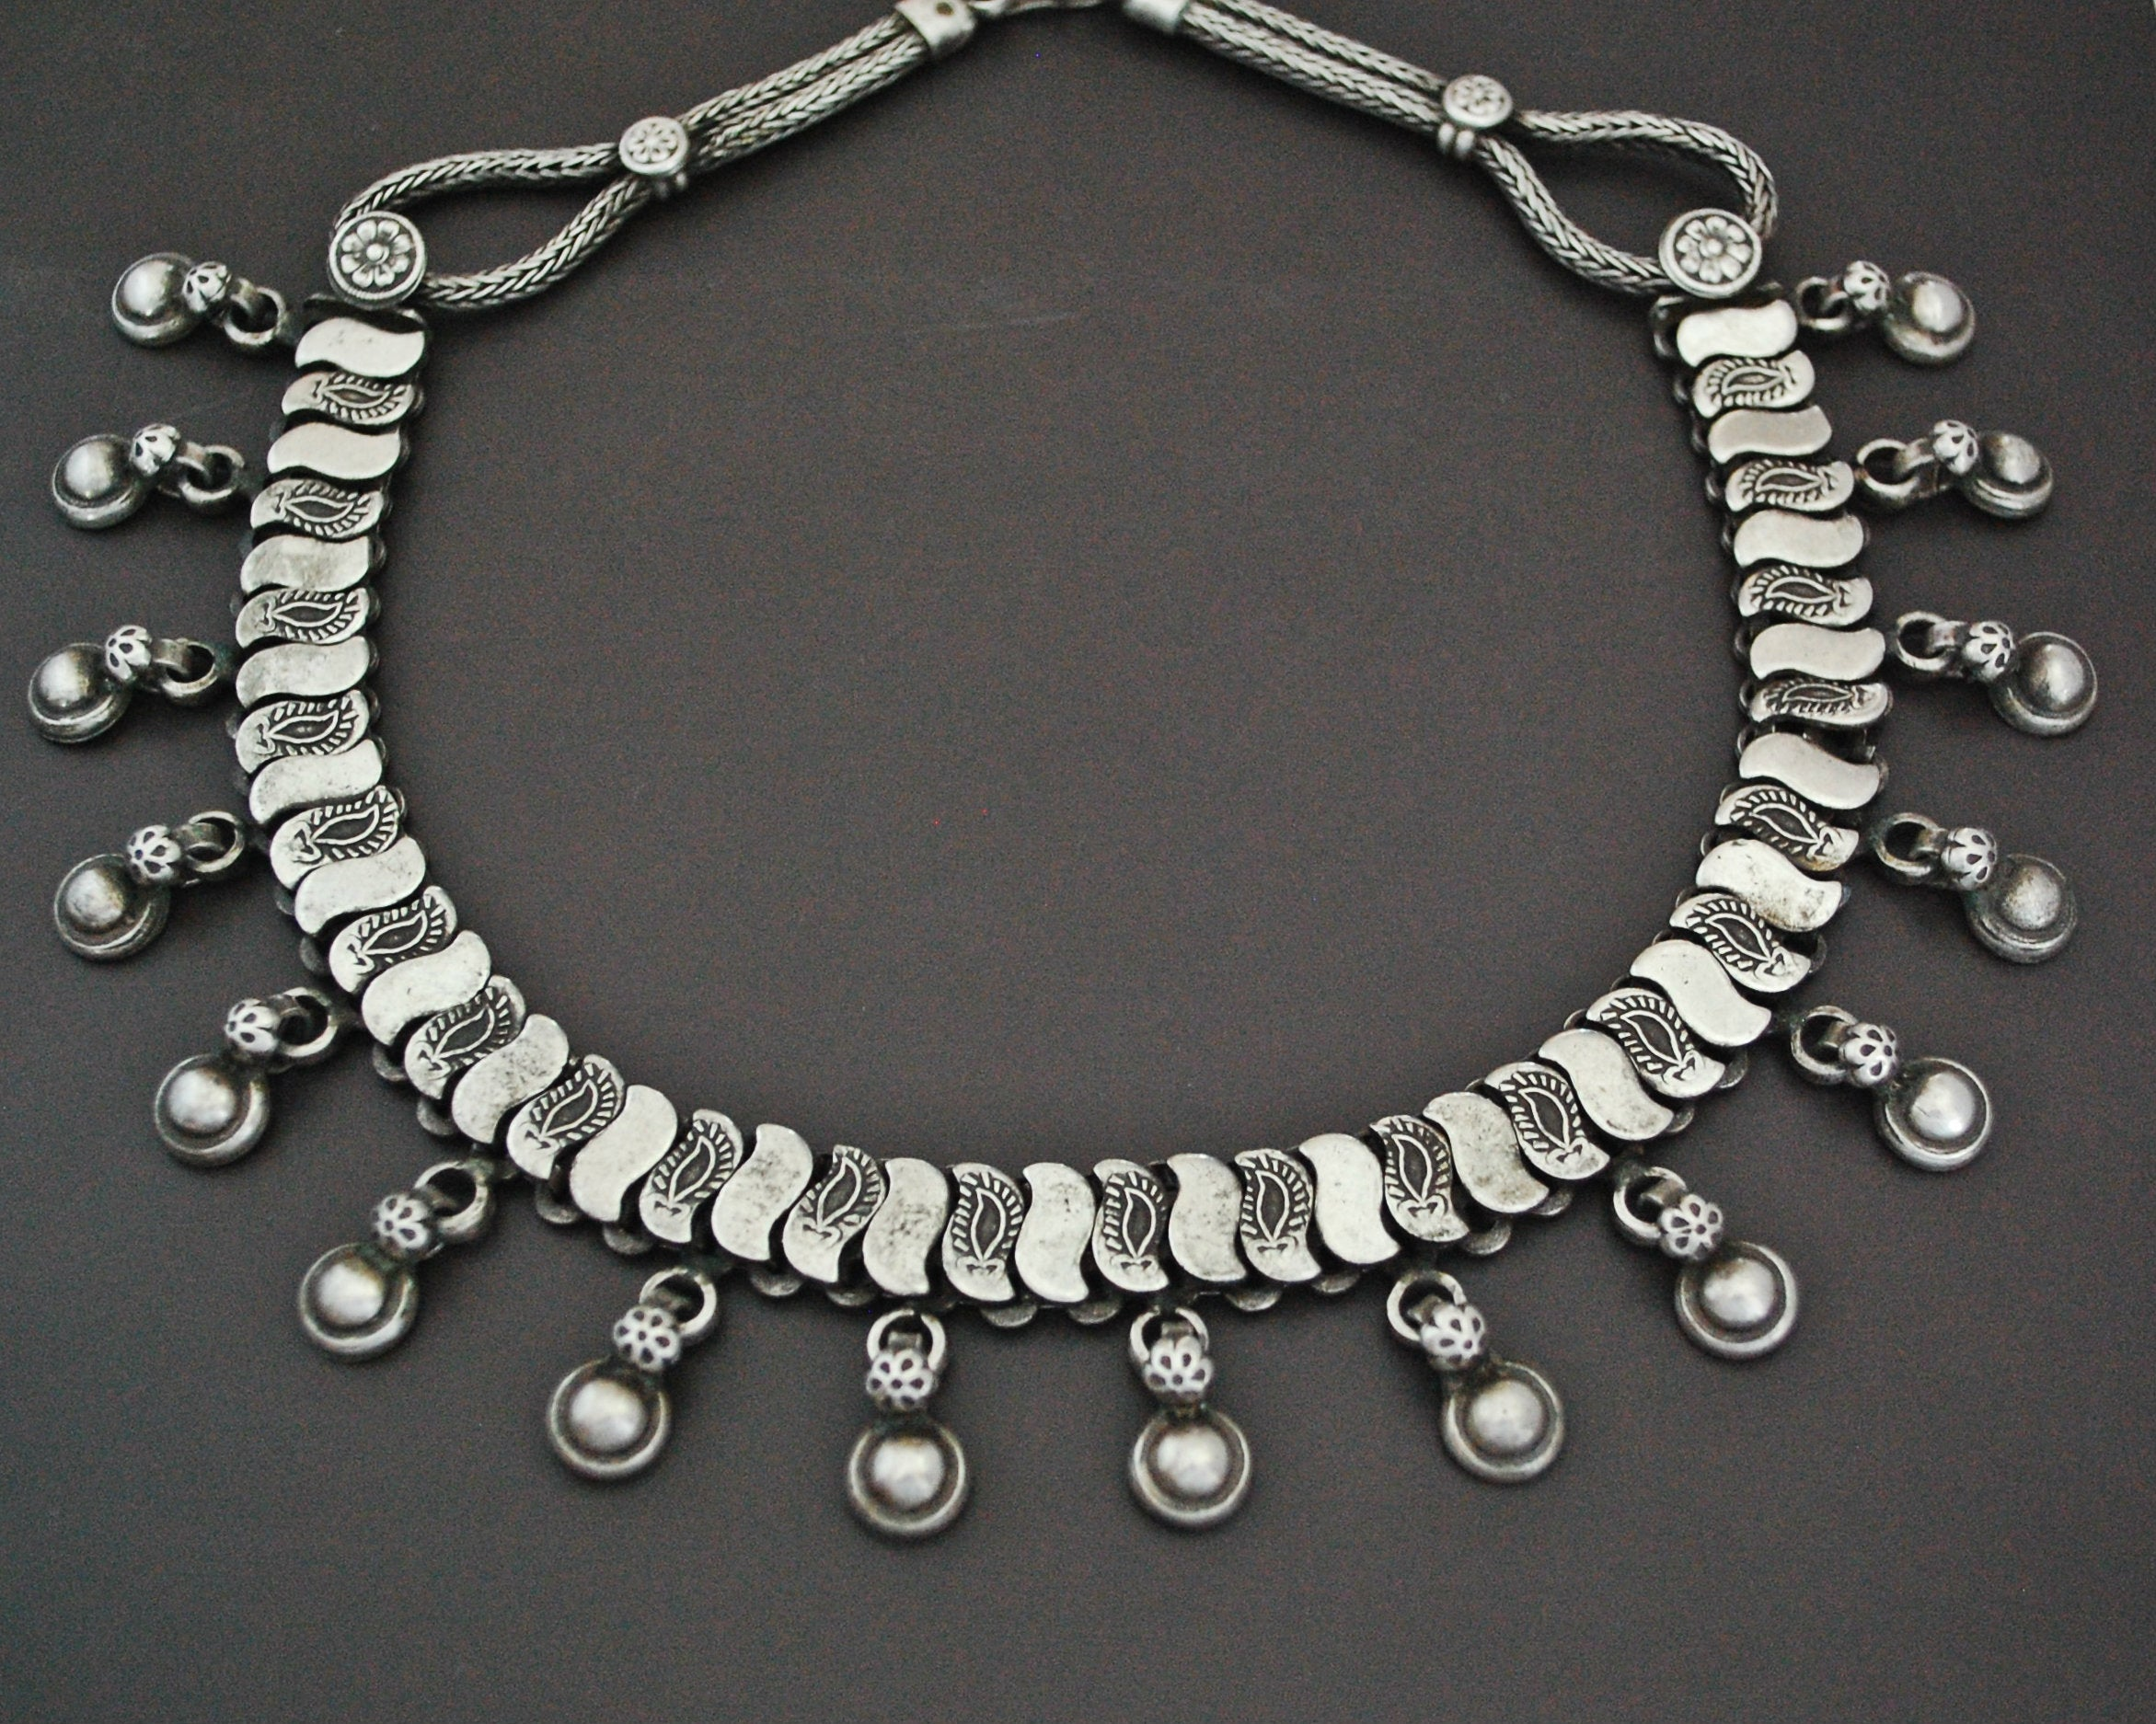 Indian Silver Choker Necklace with Charm Drops